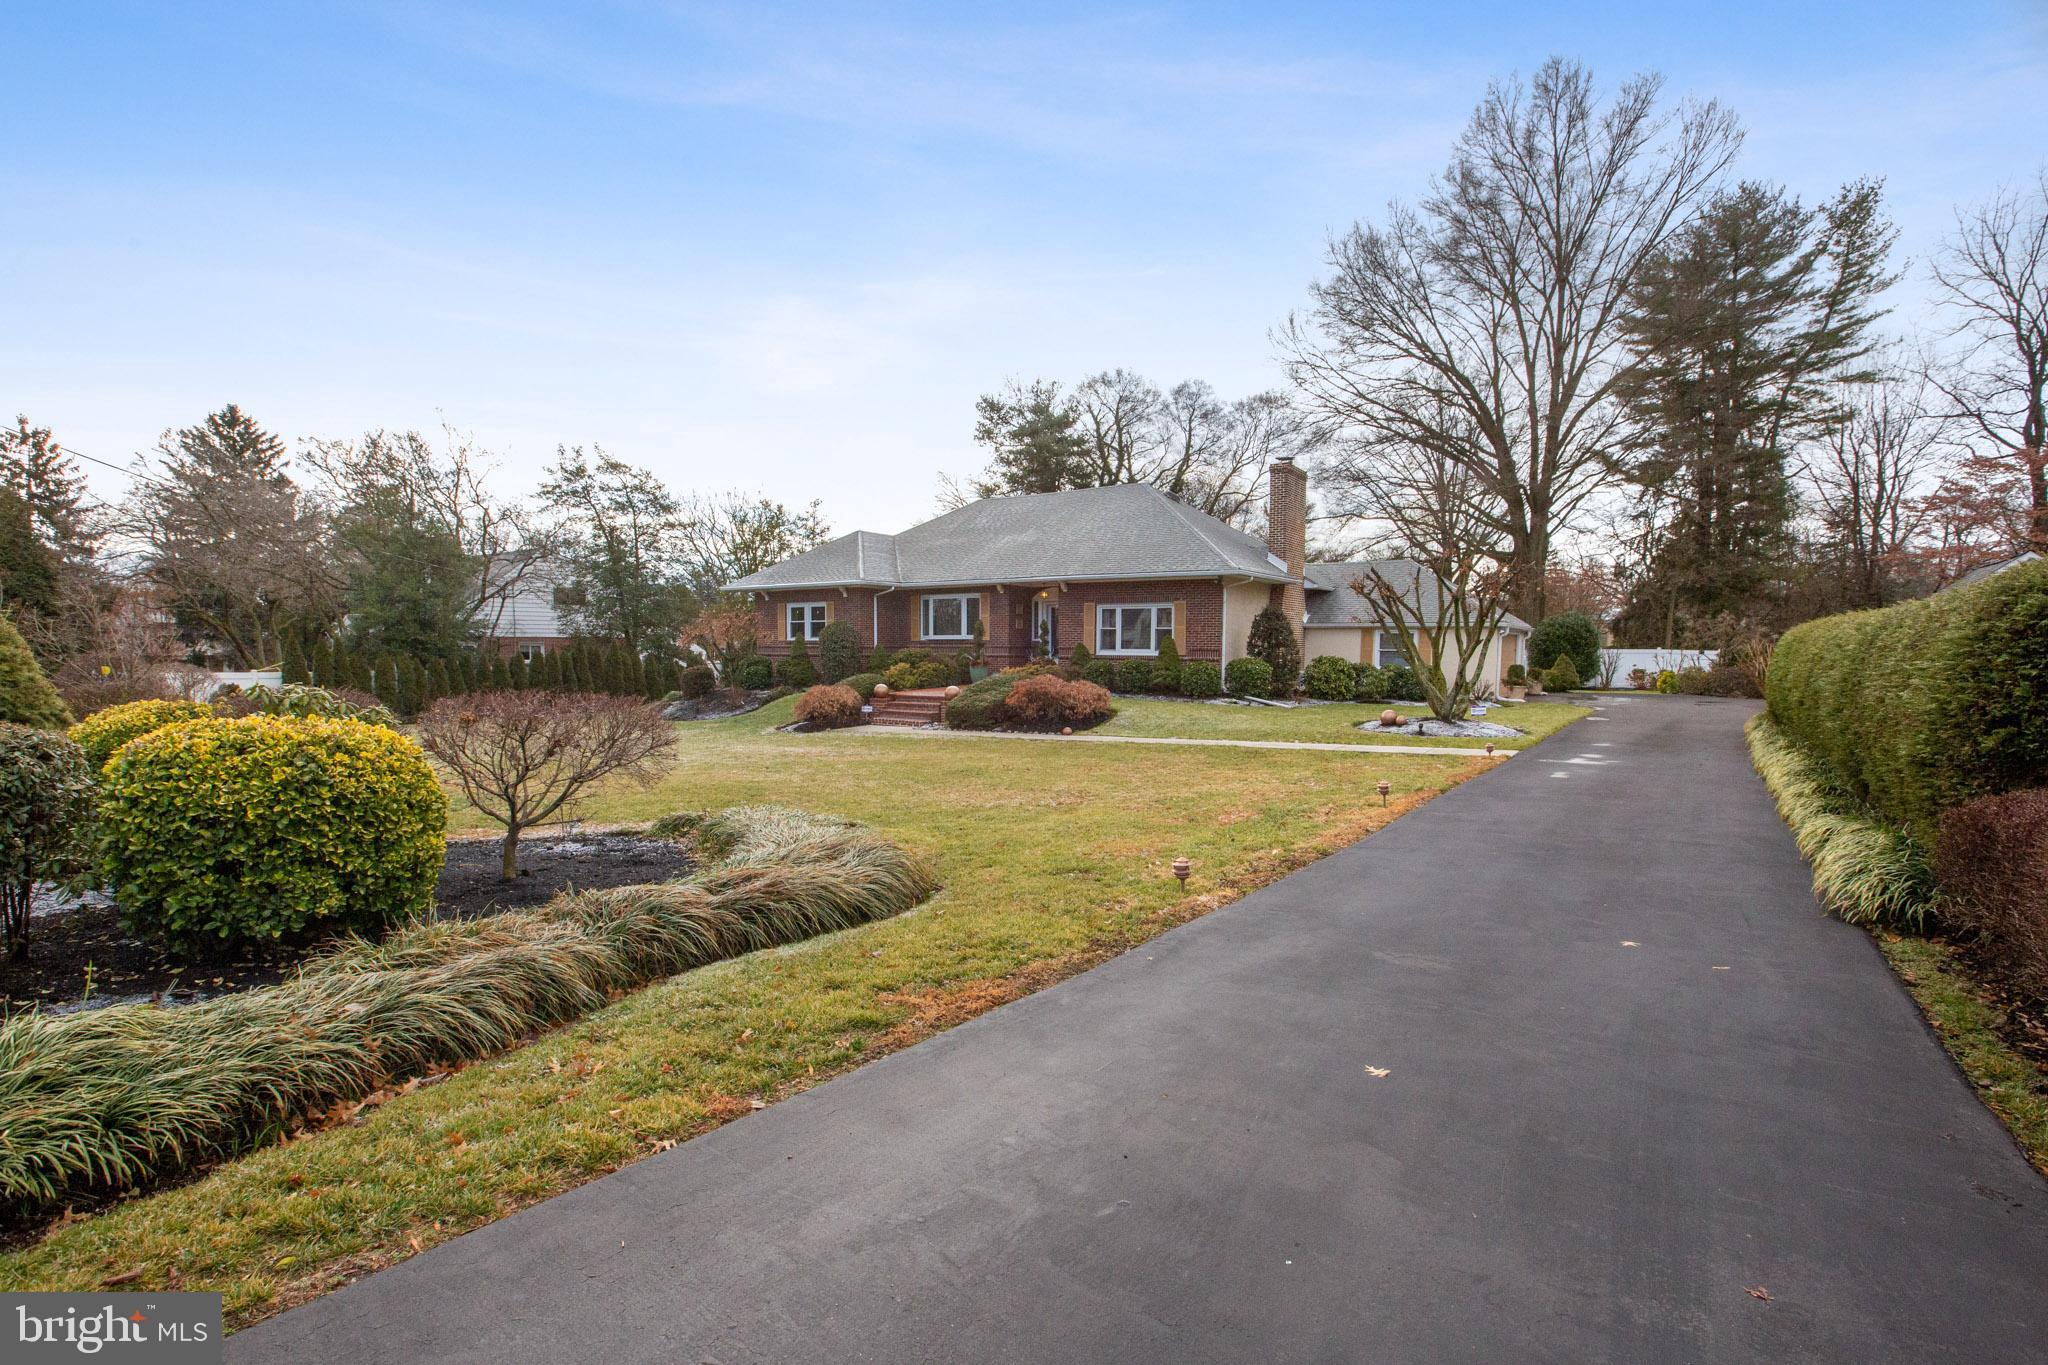 234 W ROSE VALLEY ROAD, WALLINGFORD, PA 19086